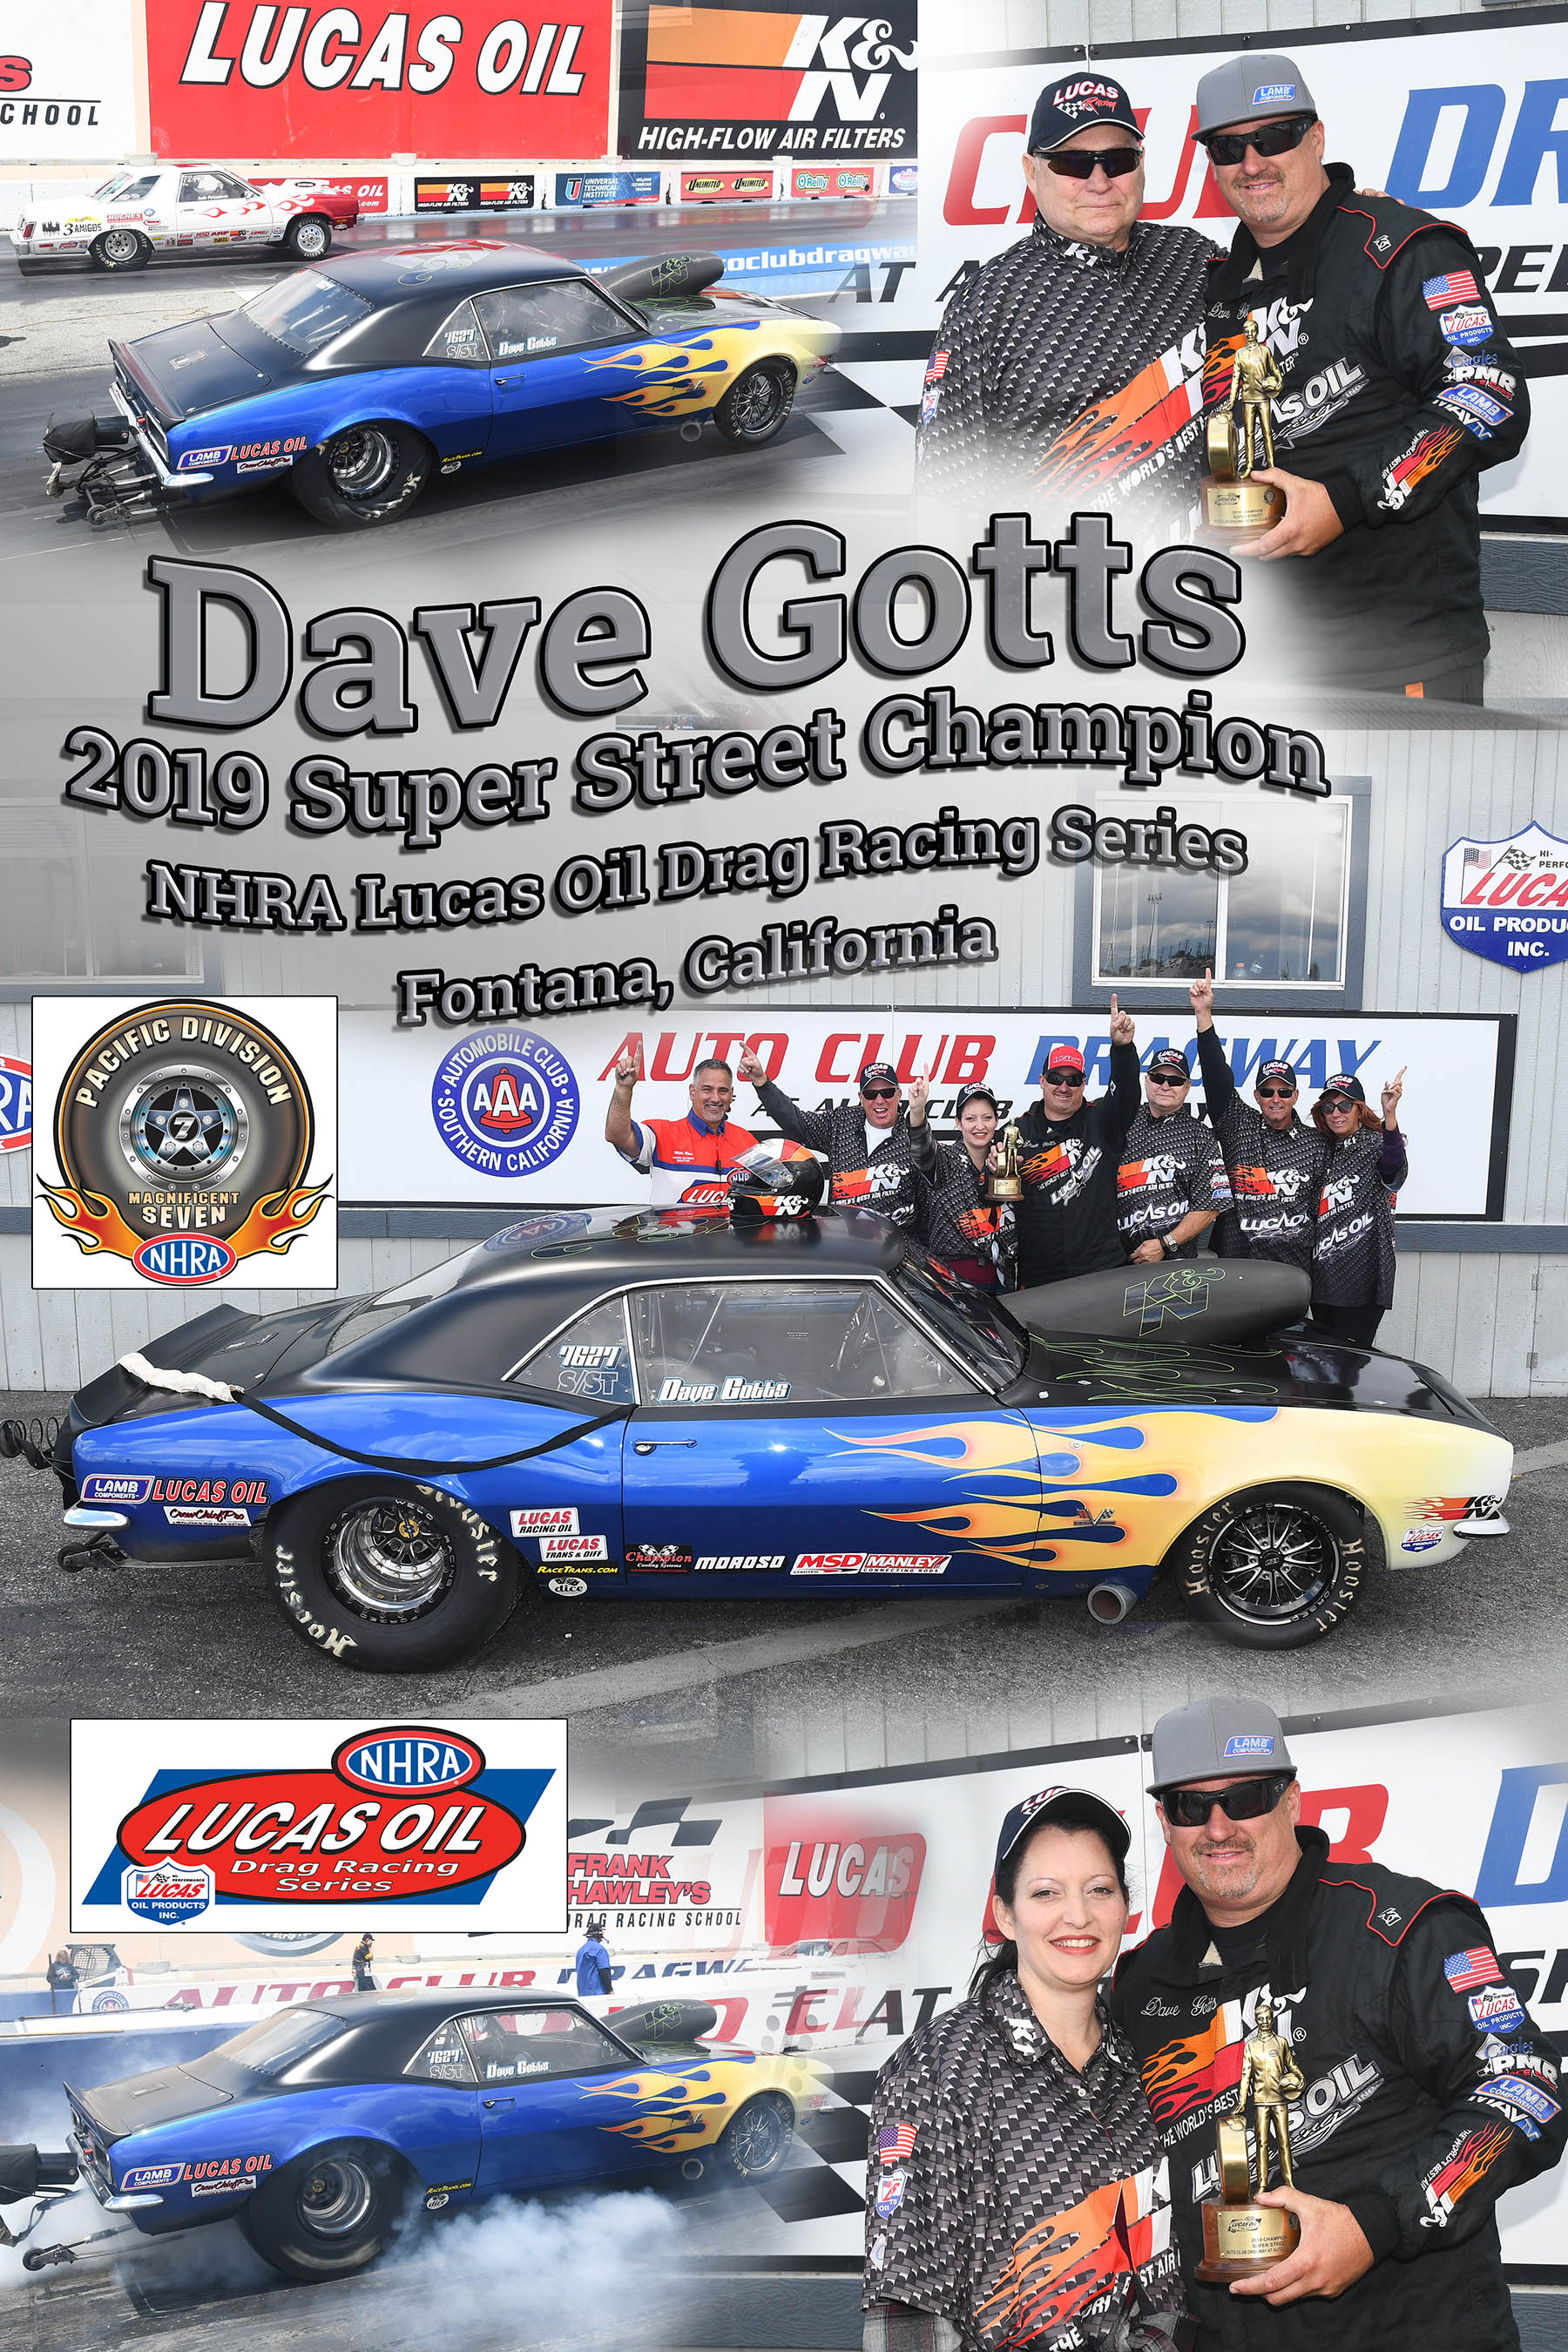 2019_05_Gotts_SST_Champion_2_Proof